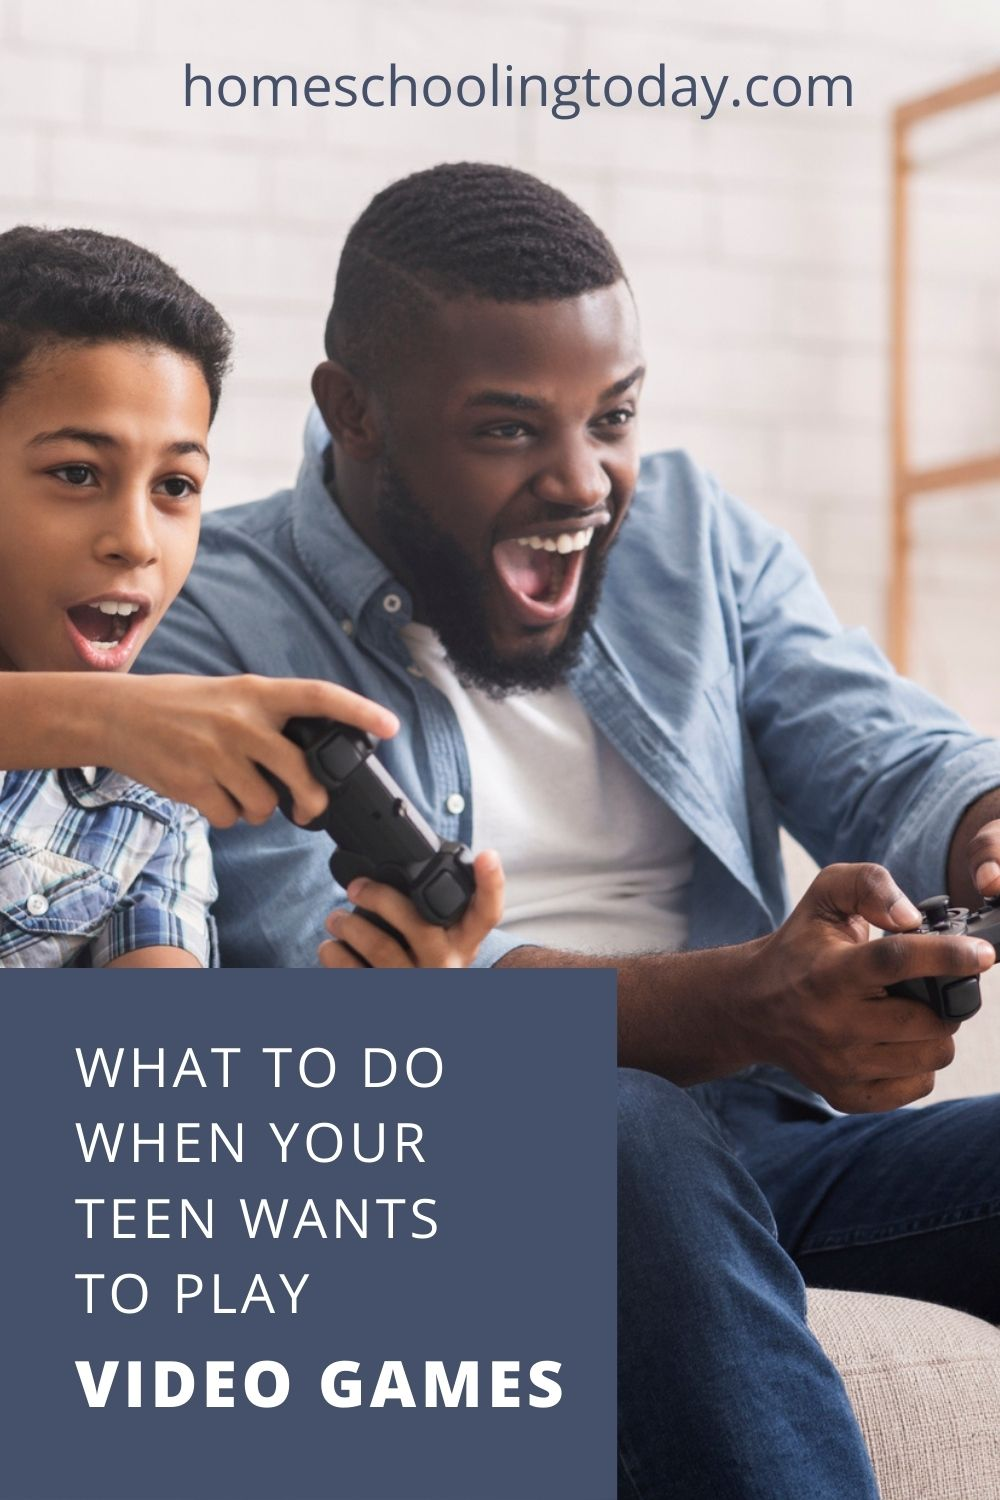 Pinterest pin showing a father and son playing video games together